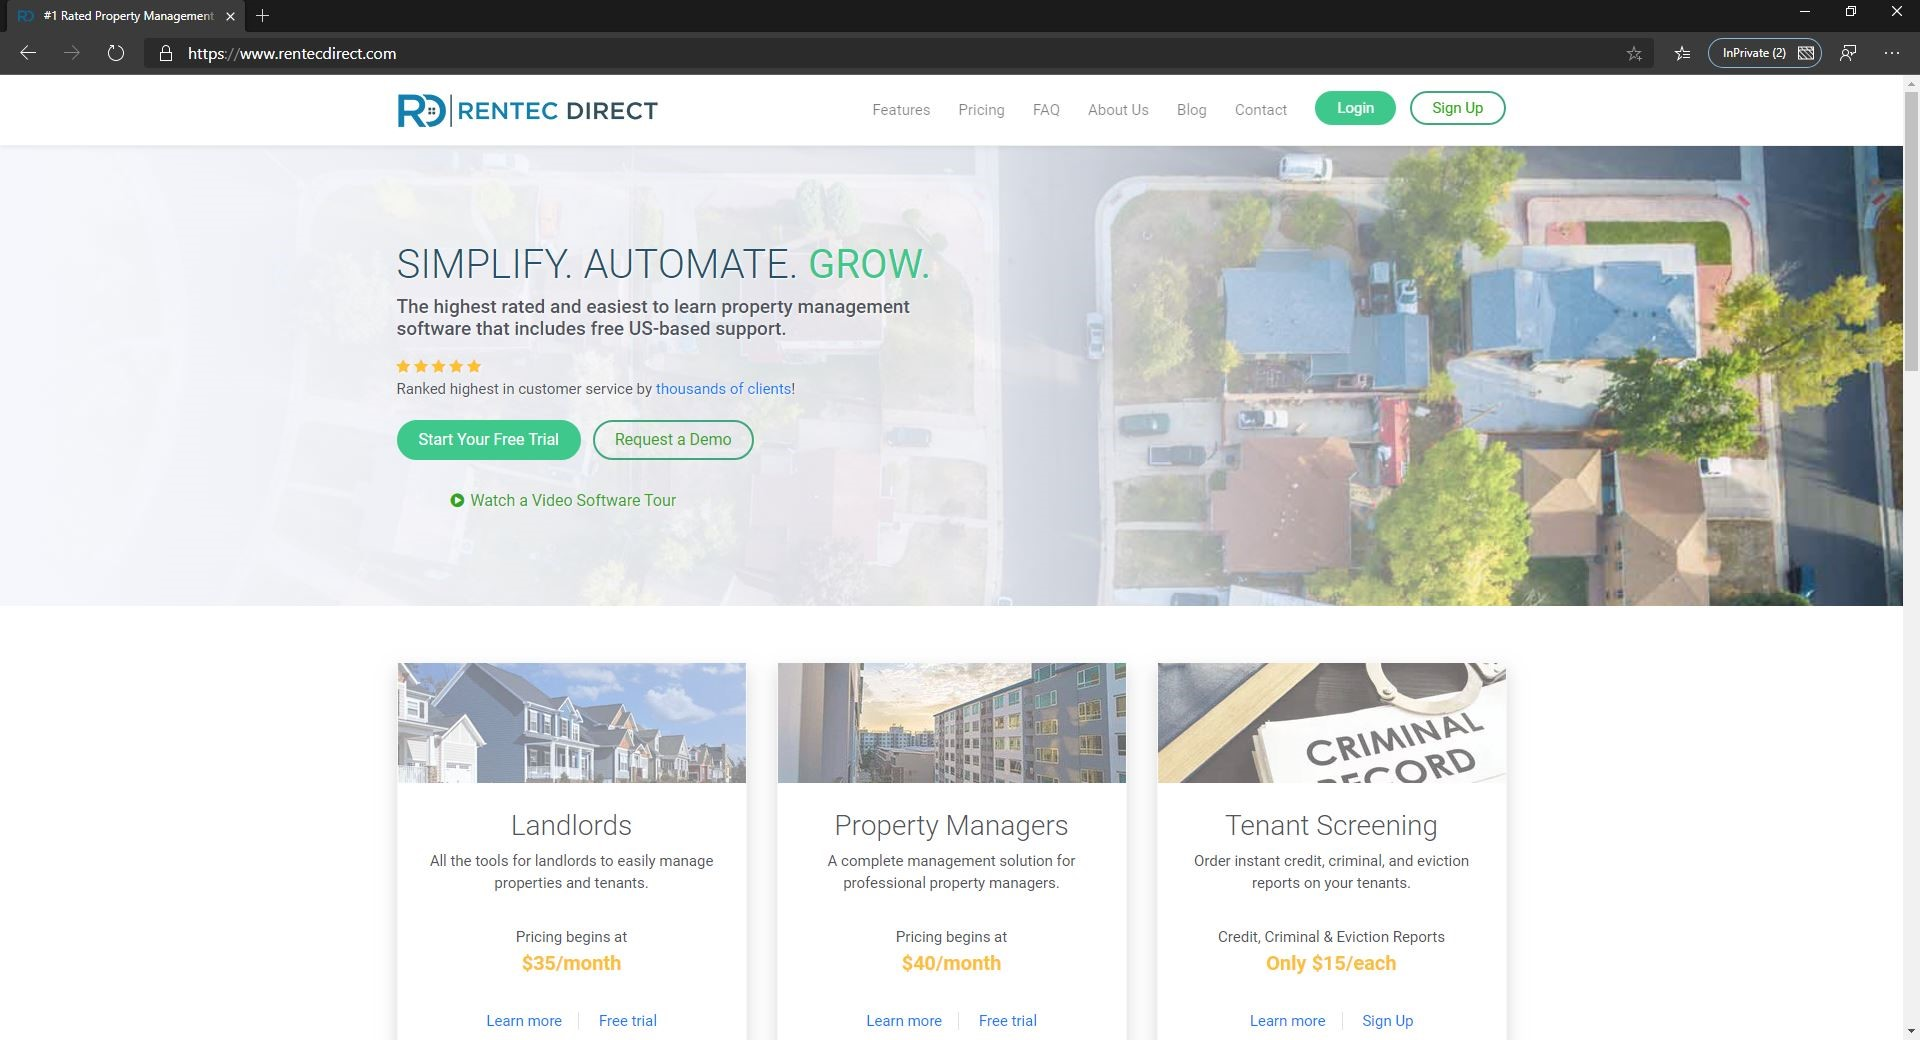 The Best Property Management Companies By Unit Volume - Image 9